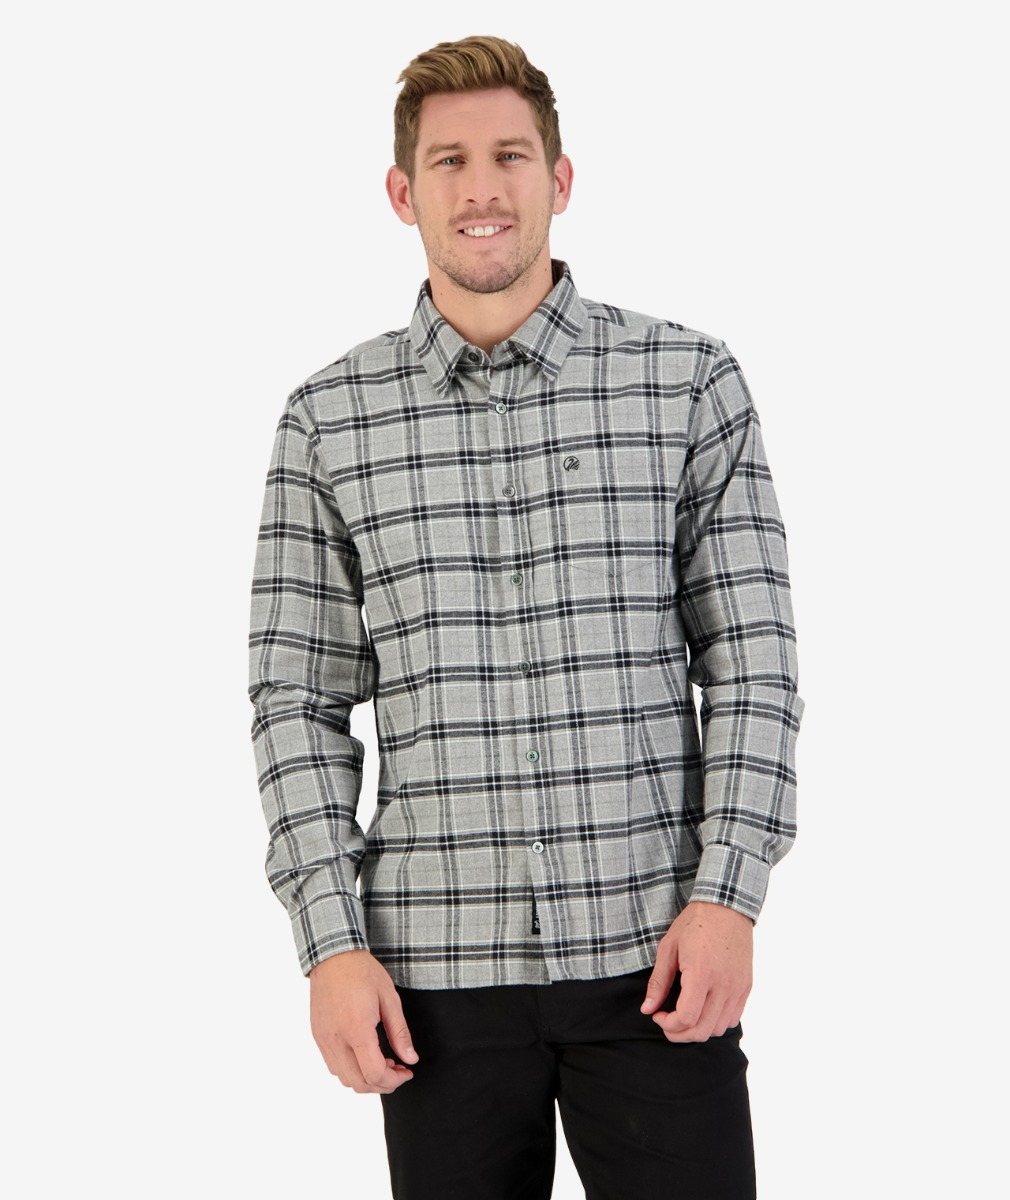 Saddle Hill L/S Shirt in Grey